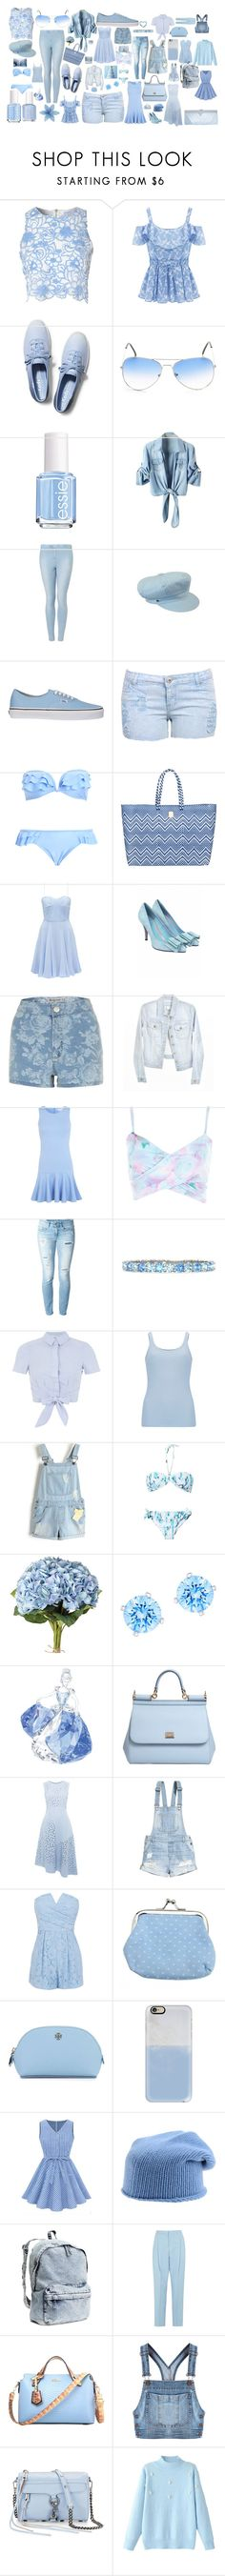 """""""Periwinkle Things!!"""" by redheadmahomiemidnightredaustin ❤ liked on Polyvore featuring True Decadence, Keds, Essie, Topshop, Vans, Joie, Forever New, Miss Selfridge, River Island and Dondup"""